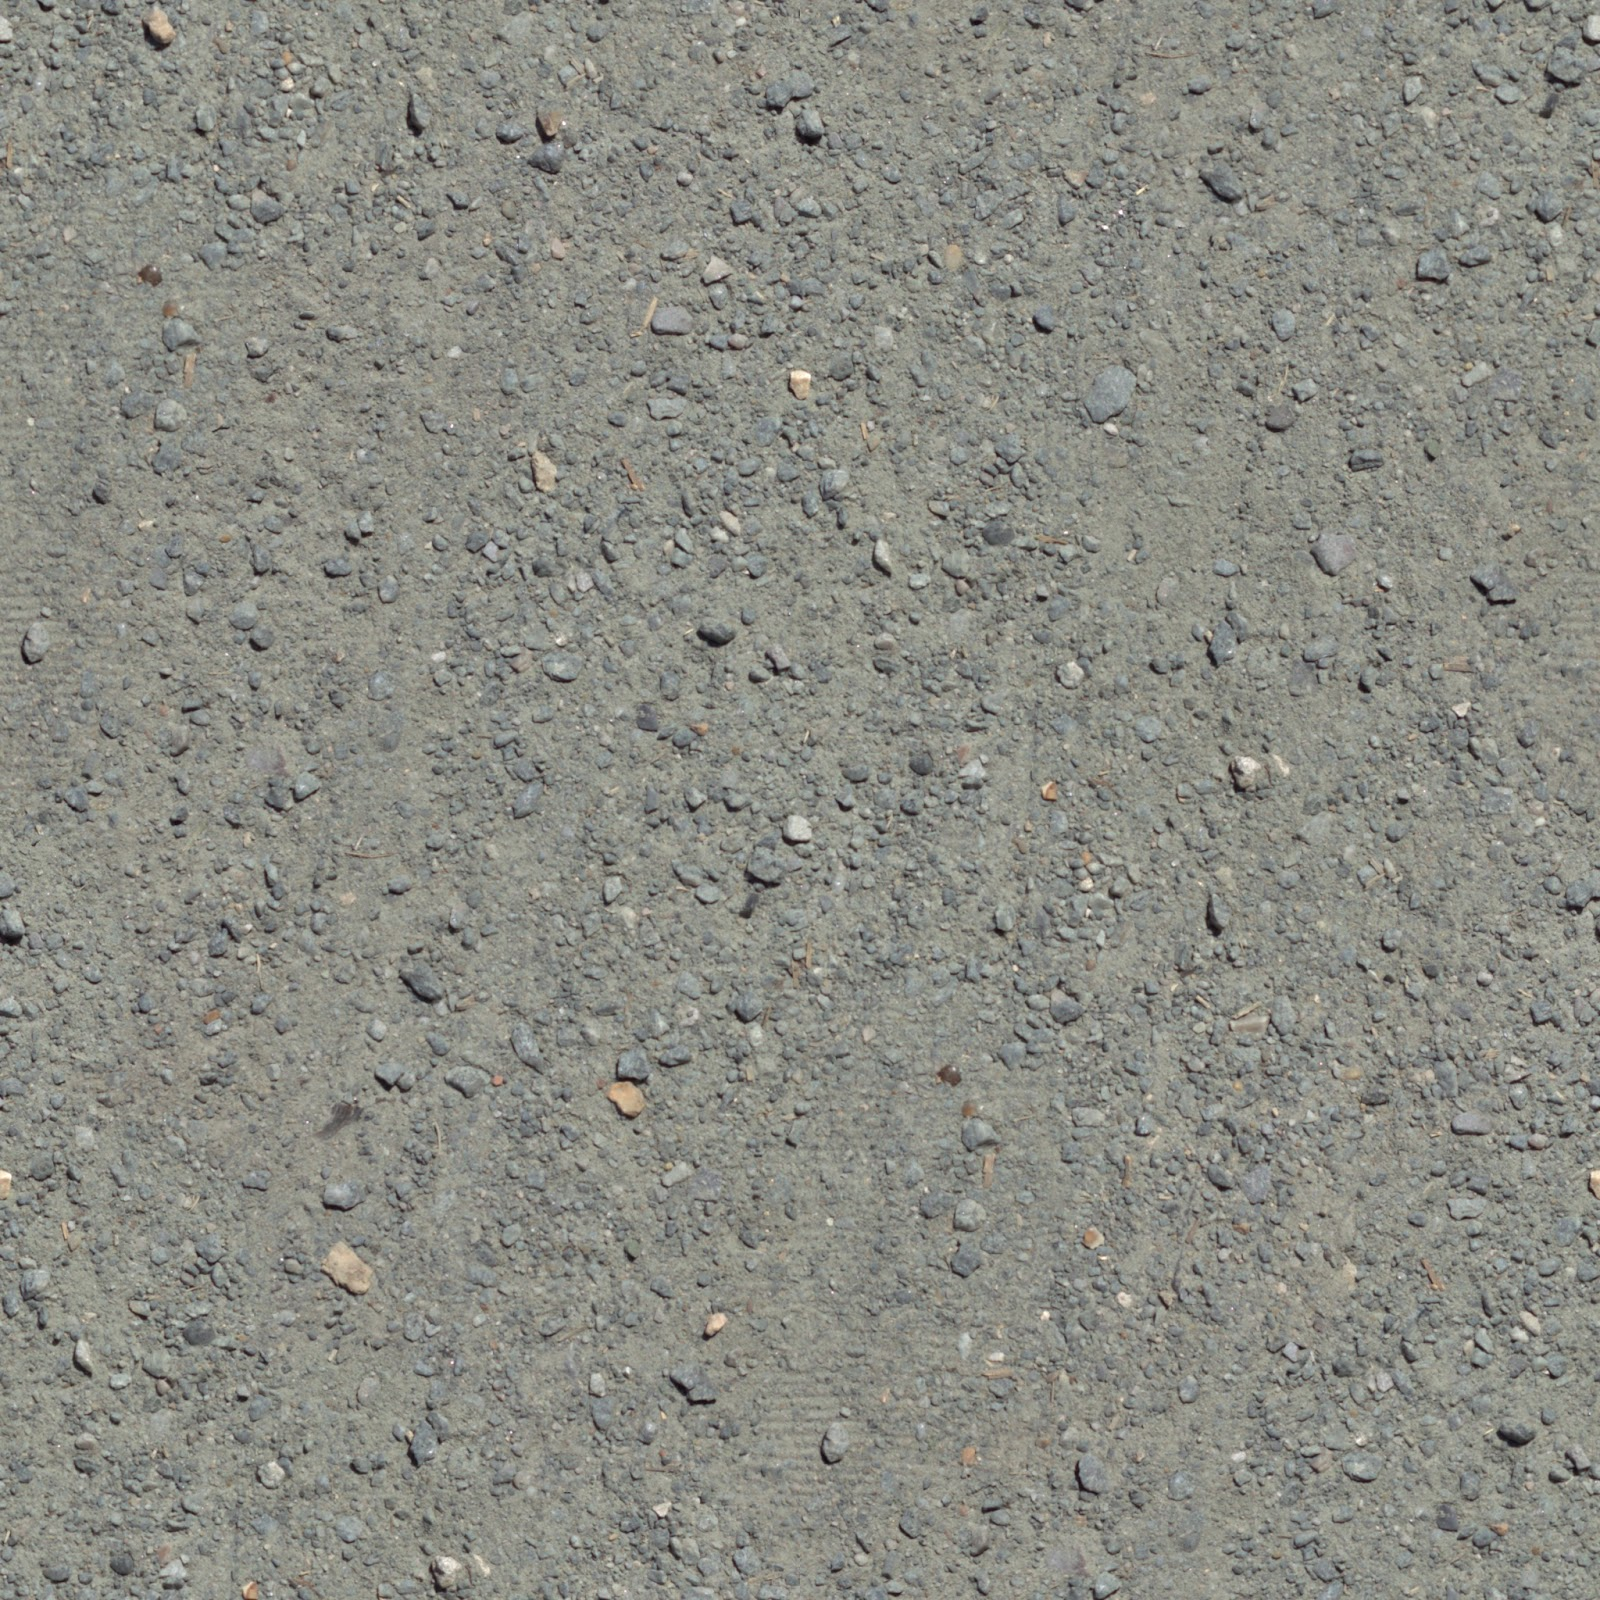 (DIRT 2) soil dust dirt sand ground seamless texture 2048x2048